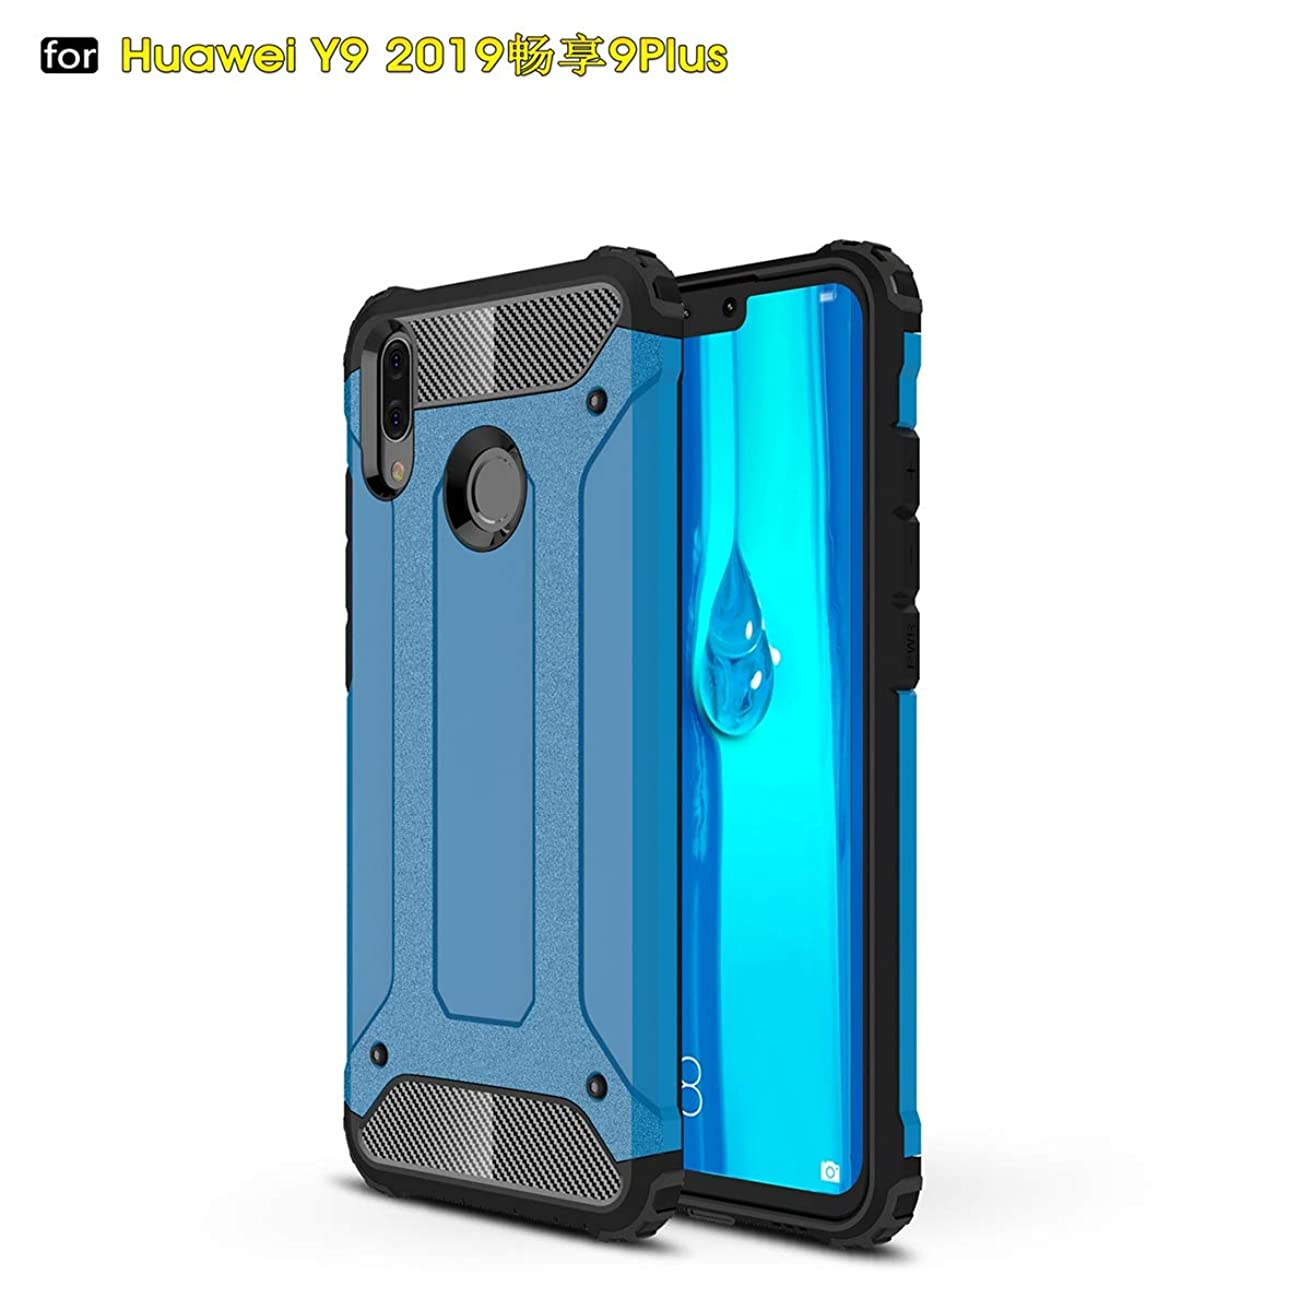 AICEDA Huawei Y9 2019 Enjoy 9 Plus Case, Ultra-Thin Anti-Drop Accessory Premium Material Full Protection Slim Girls Cover, Specially Designed for Huawei Y9 2019 Enjoy 9 Plus Blue